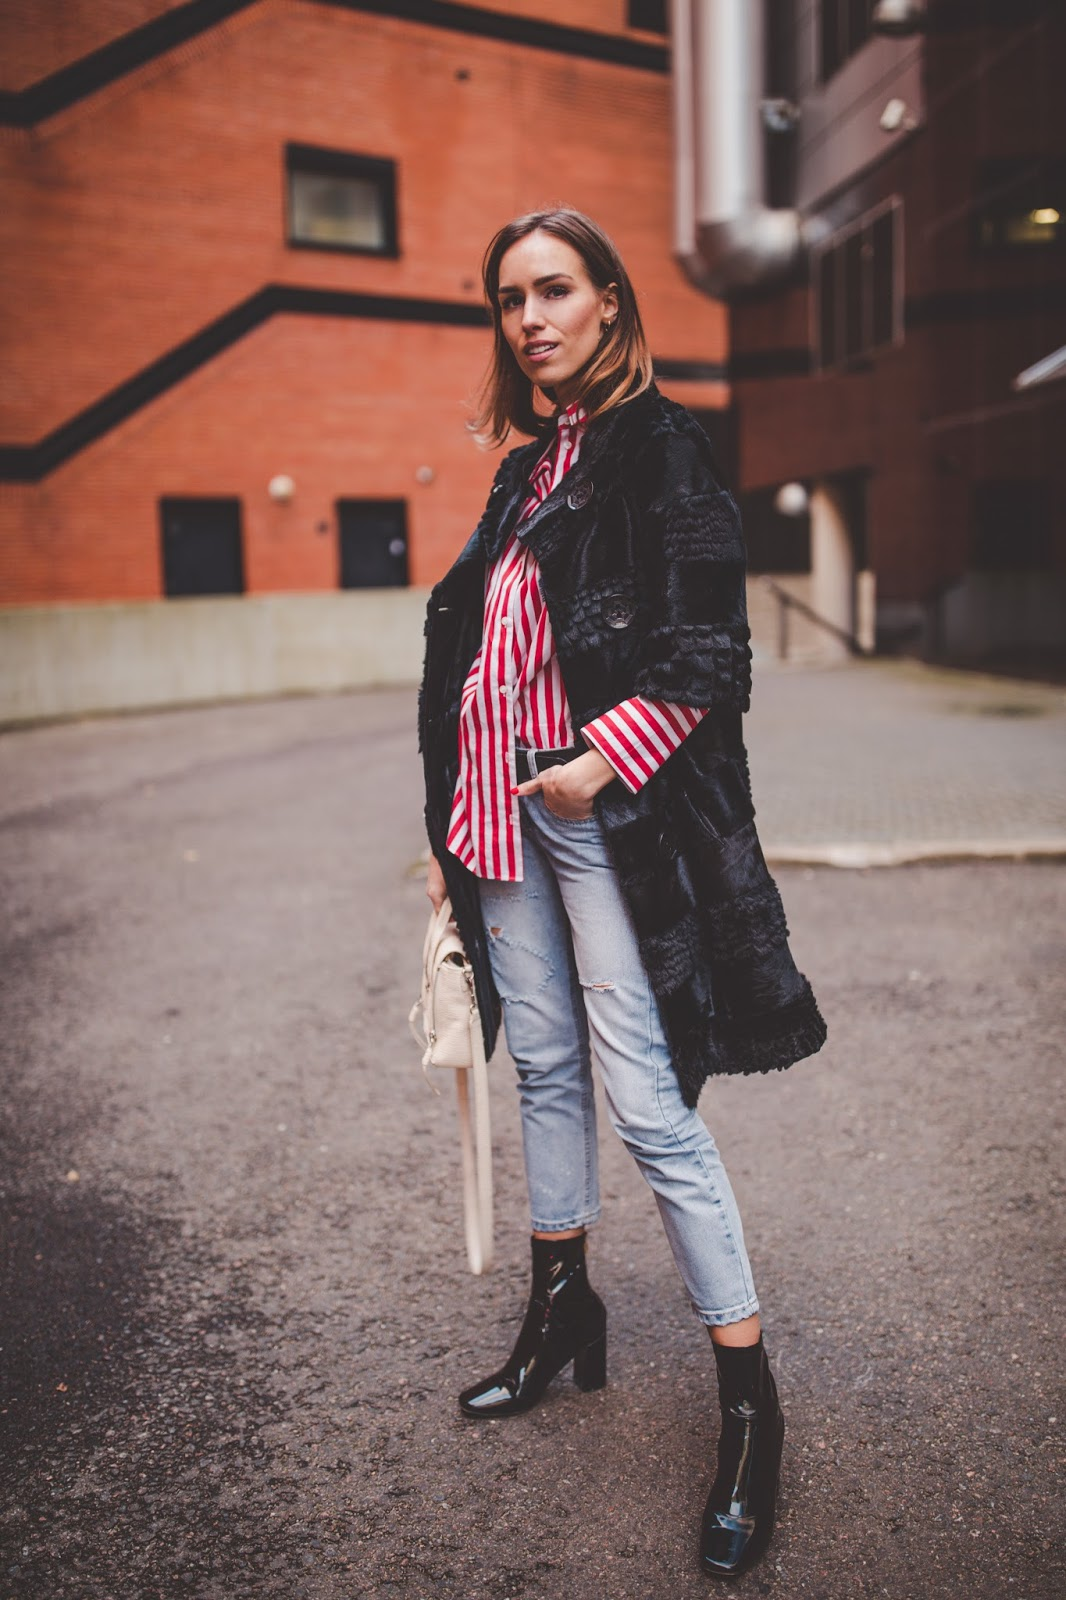 fur coat stripe shirt jeans boots outfit fall